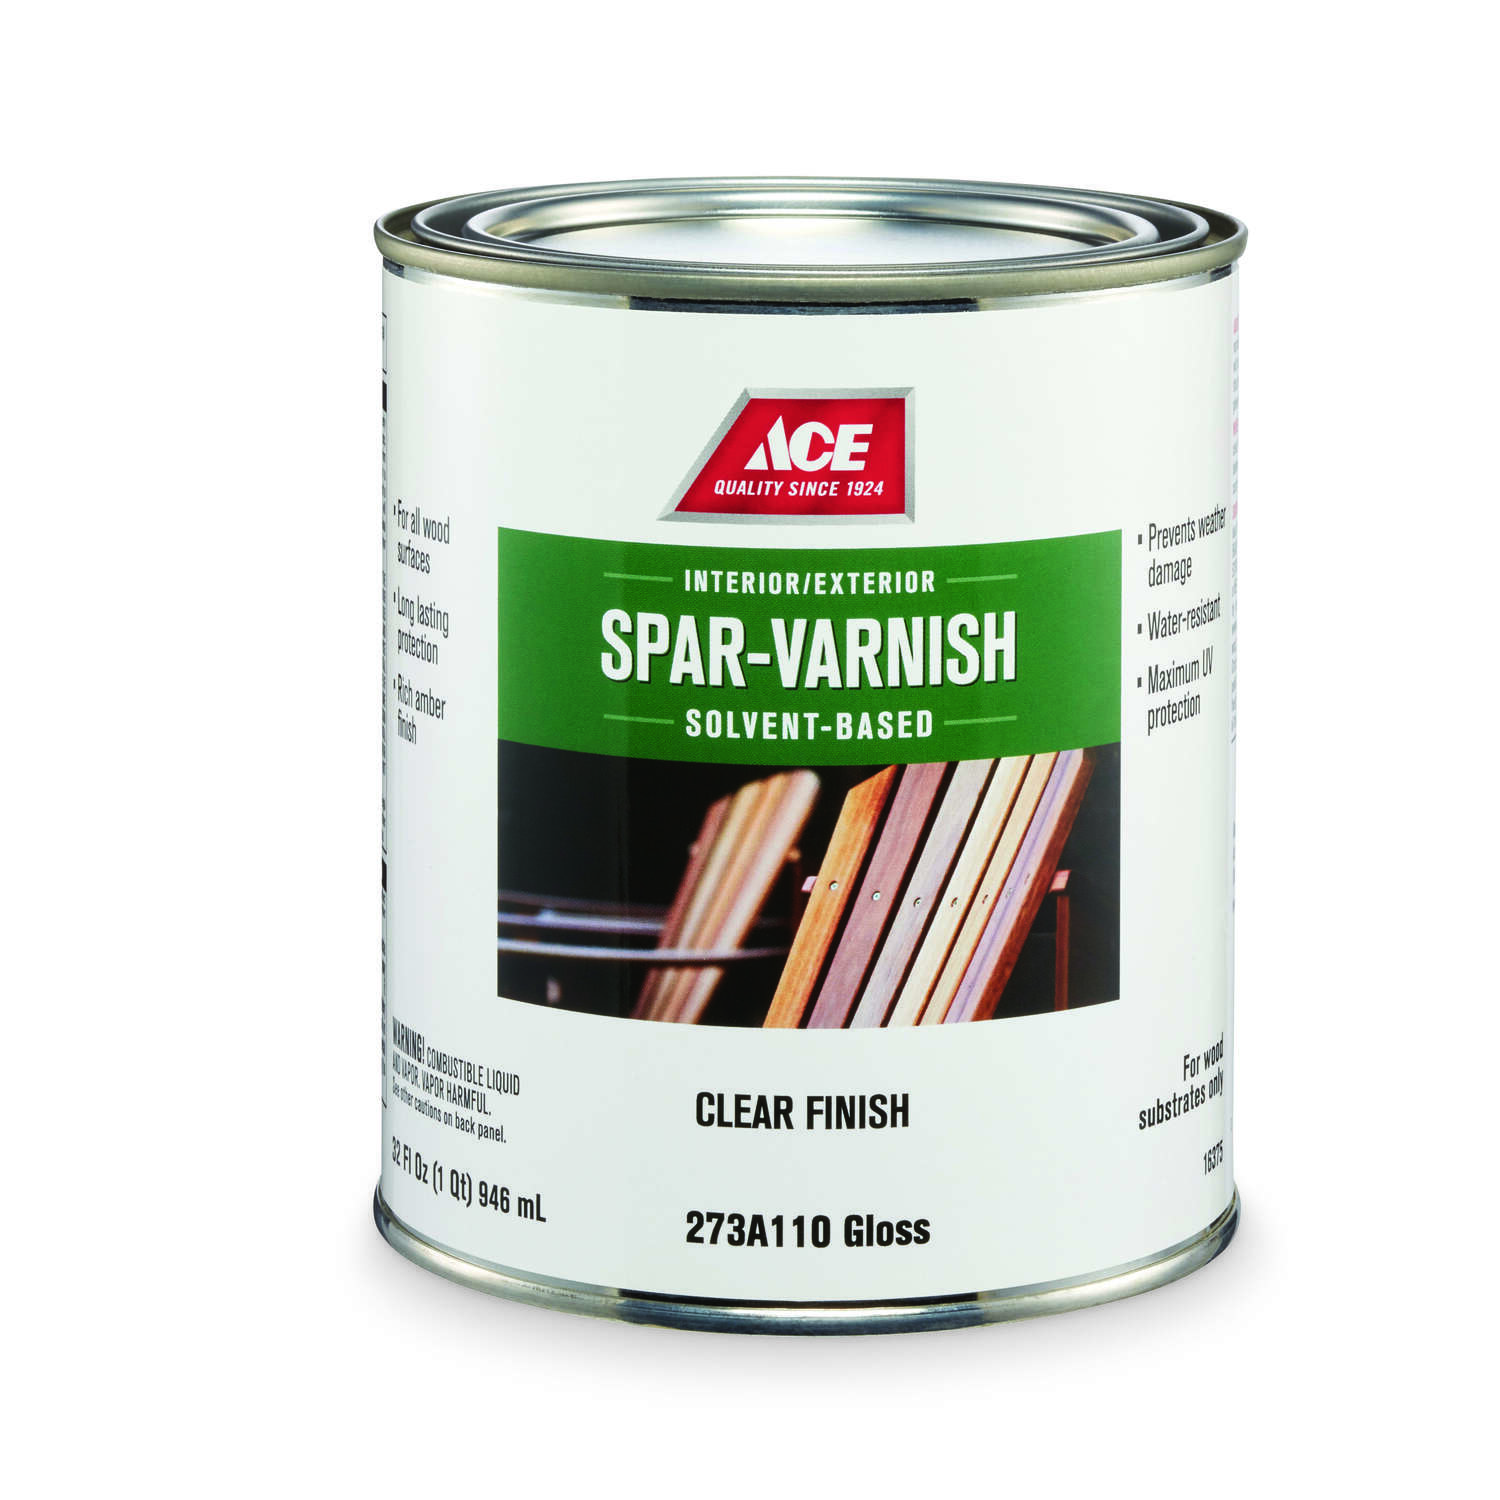 Ace  Gloss  Rich Amber  Solvent-Based  Spar Varnish  1 qt.